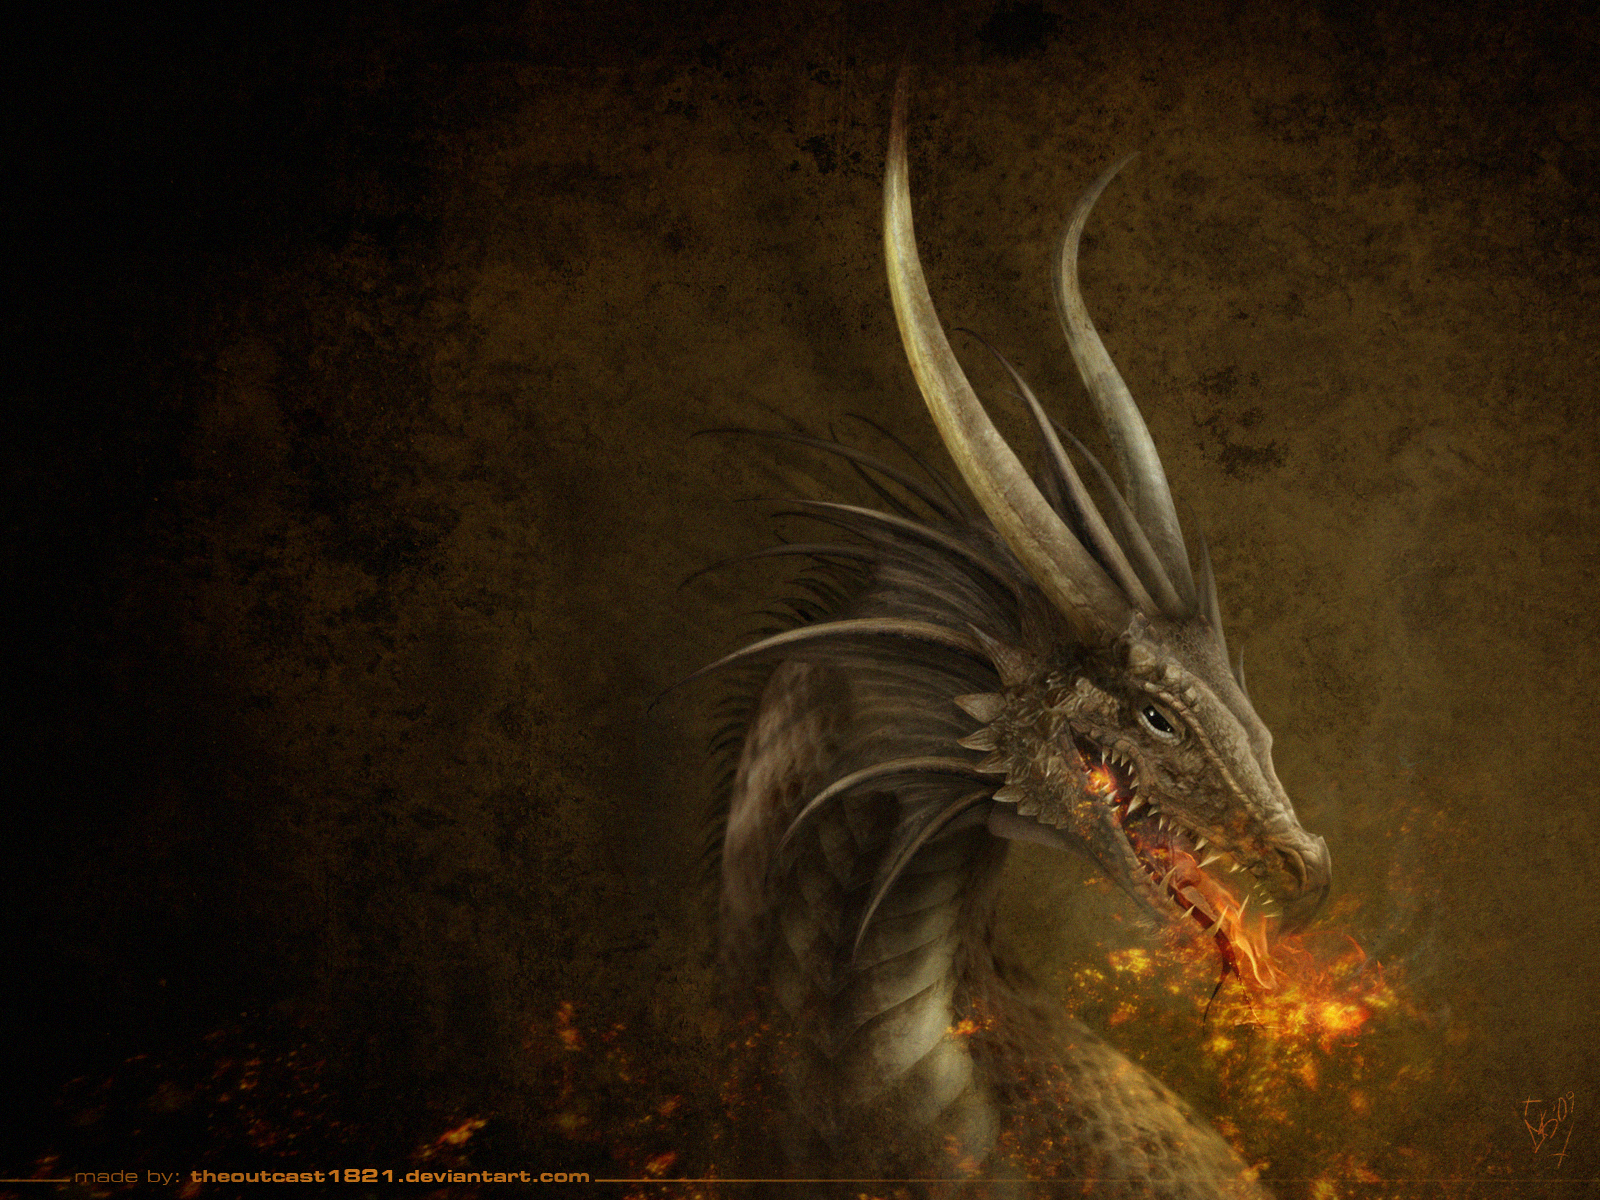 http://3.bp.blogspot.com/_PULaj4DTLpk/TKOA1tQ2n9I/AAAAAAAAAKI/IHOoFwN985s/s1600/The_Dragon_wallpaper_by_TheOutcast1821.jpg